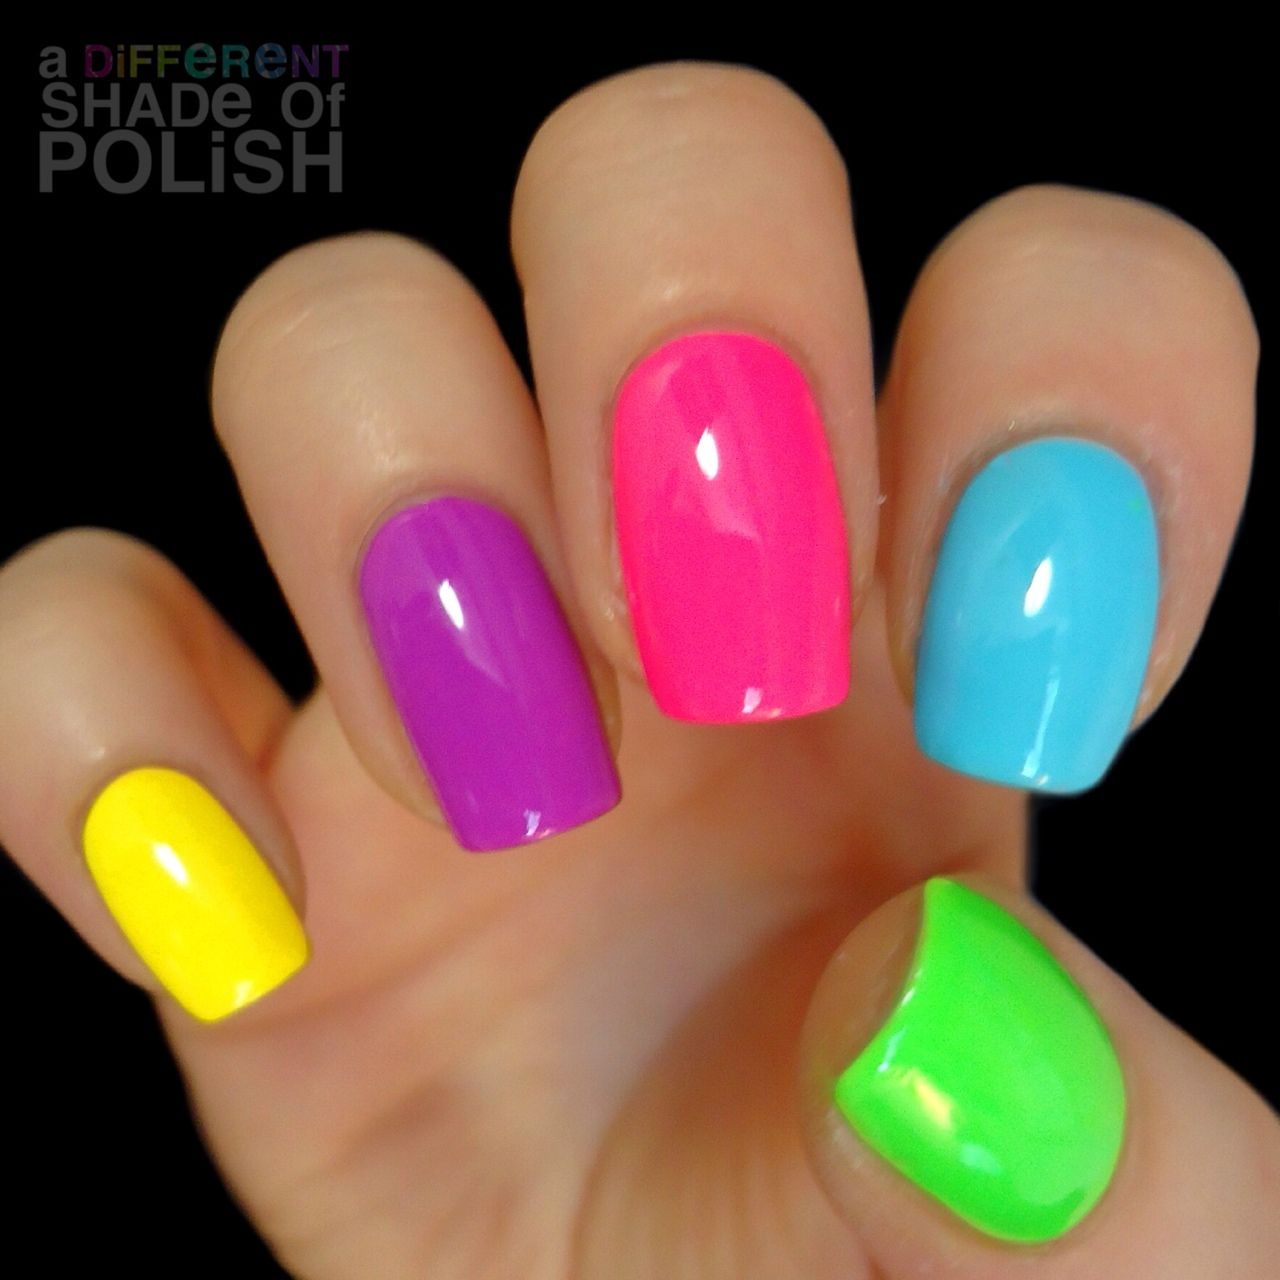 A Different Shade of Polish : Photo | Nails | Uñas arcoiris, Uñas ...